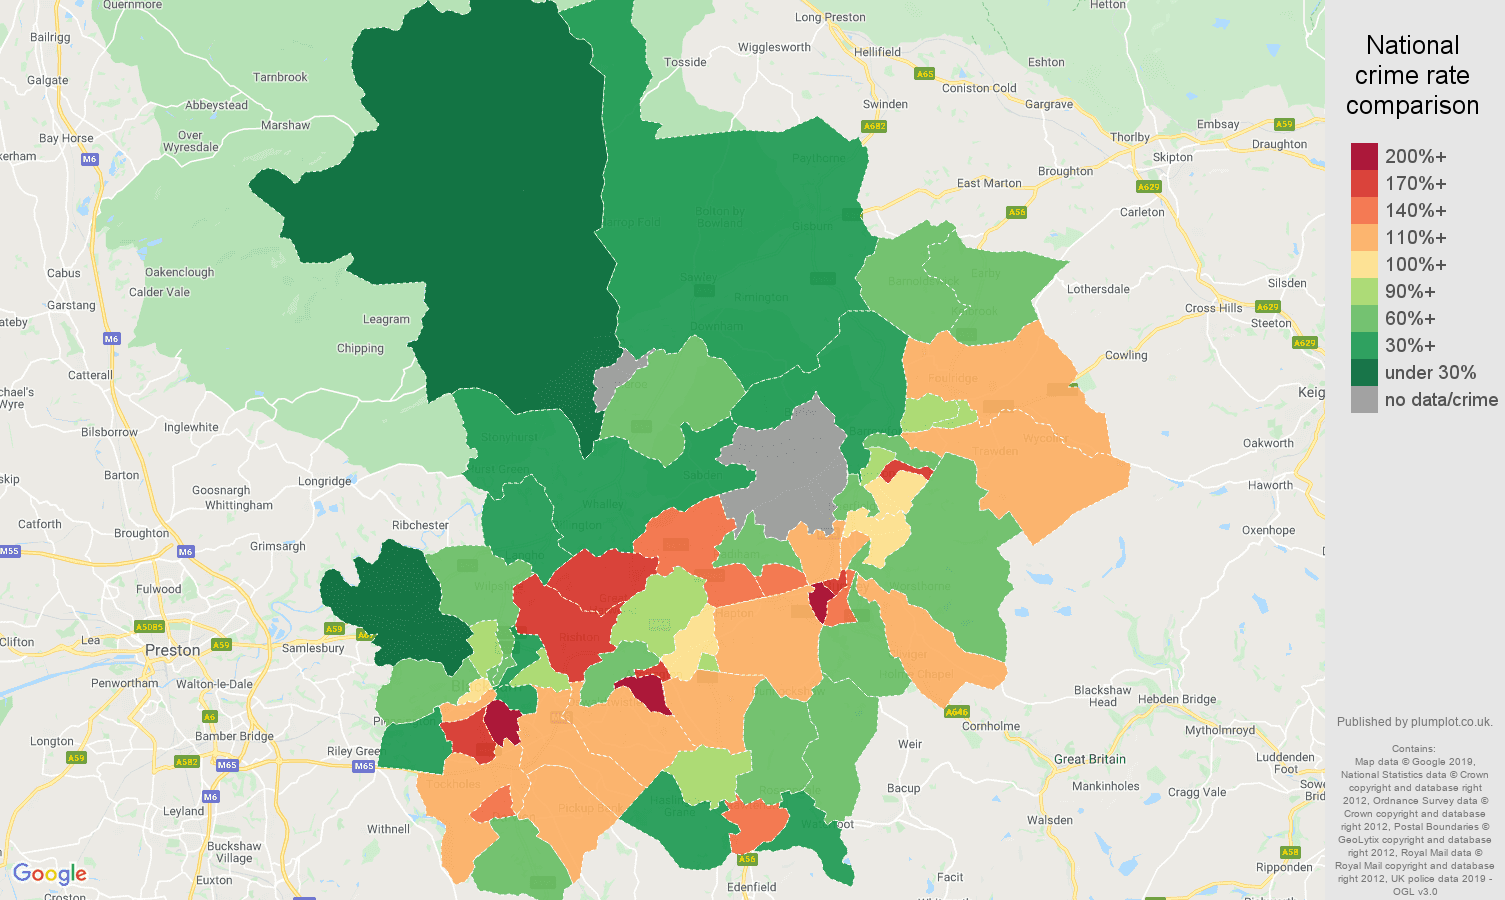 Blackburn other crime rate comparison map